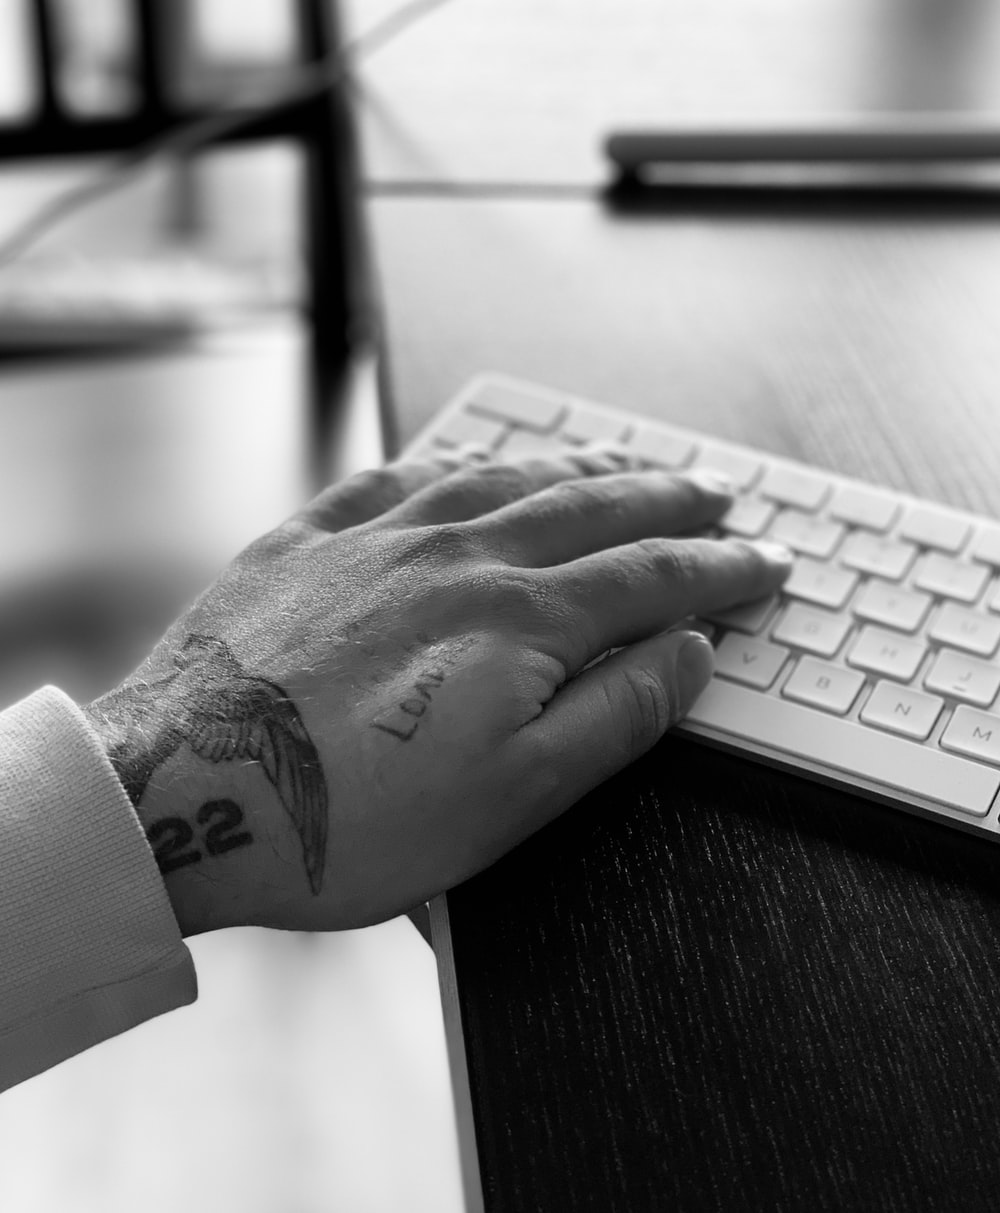 grayscale photo of persons hand on computer keyboard